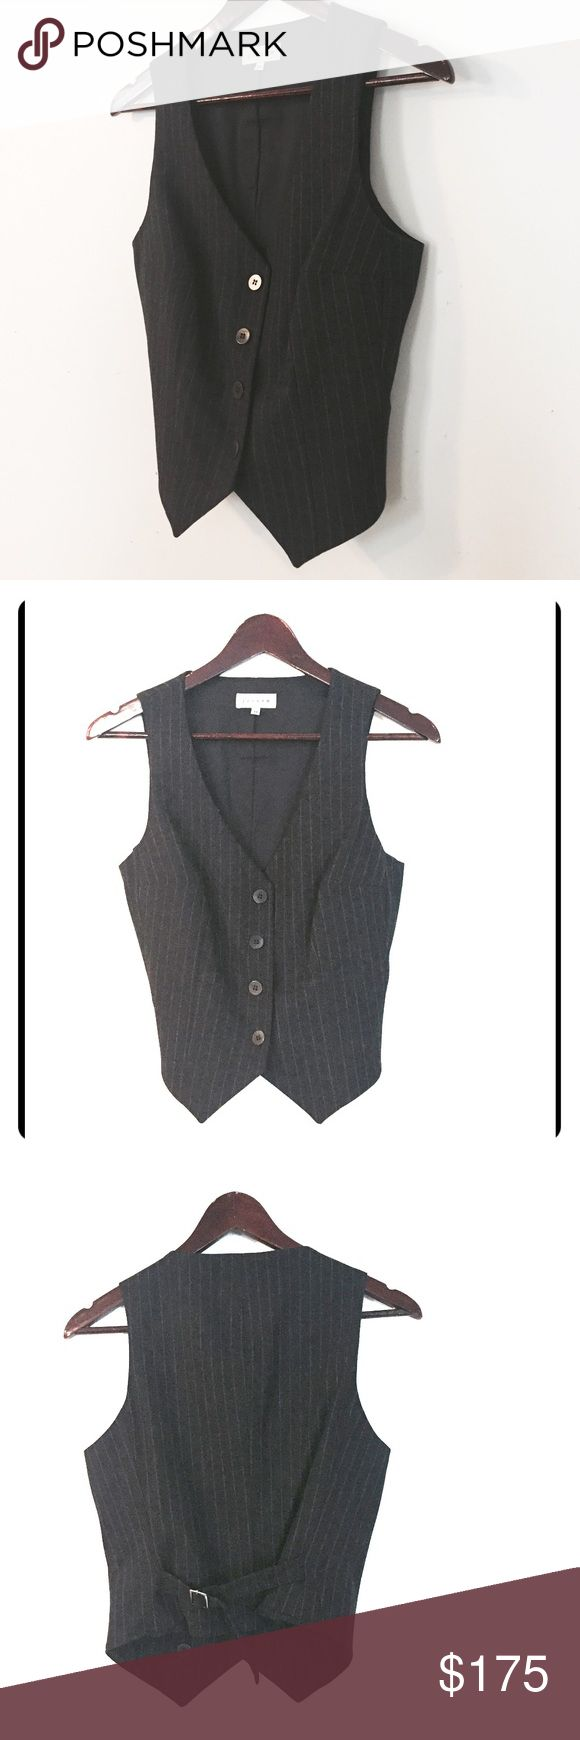 FALL PREVIEW - Jigsaw Pinstripe Suit Vest Coming soon Show the boys how pinstripes are done properly with this Made in England creation by Jigsaw.   Shell: 96% Wool, 4% lycra. Lining is 40% polyamide, 3% elastane, 57% Viscose. UK size 10. Jigsaw Jackets & Coats Vests